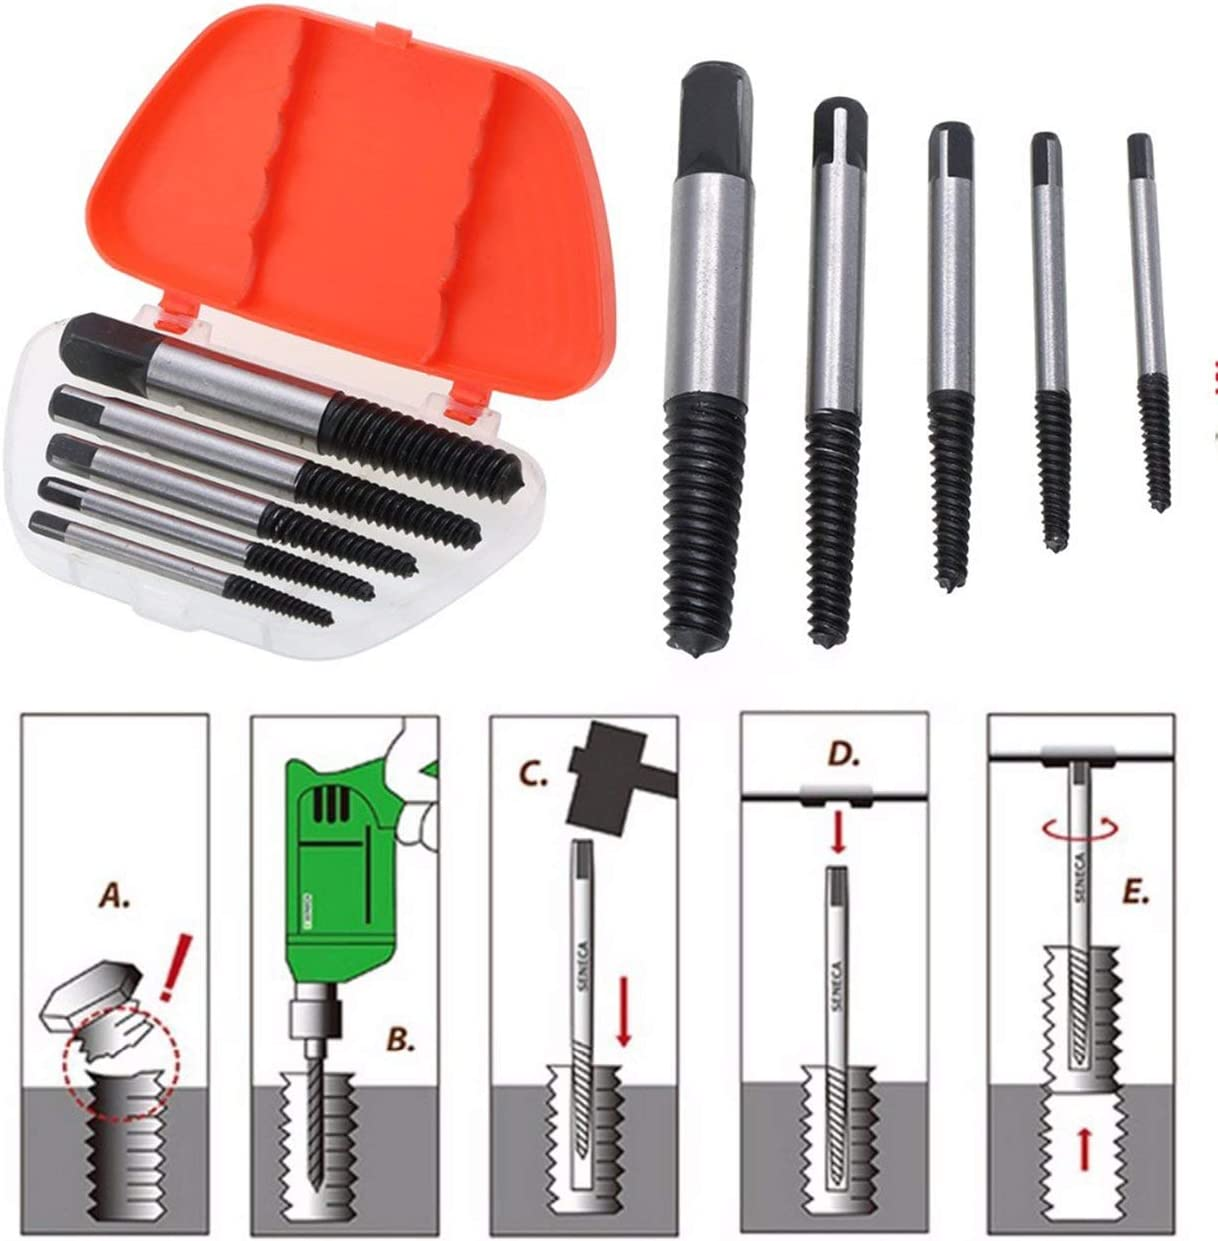 Elviray 5Pcs Speed Out Damaged Screw Extractor Drill Bits Guide Set Broken Bolt Remover Easy Out Set Bolt Stud Stripped Remover Tool